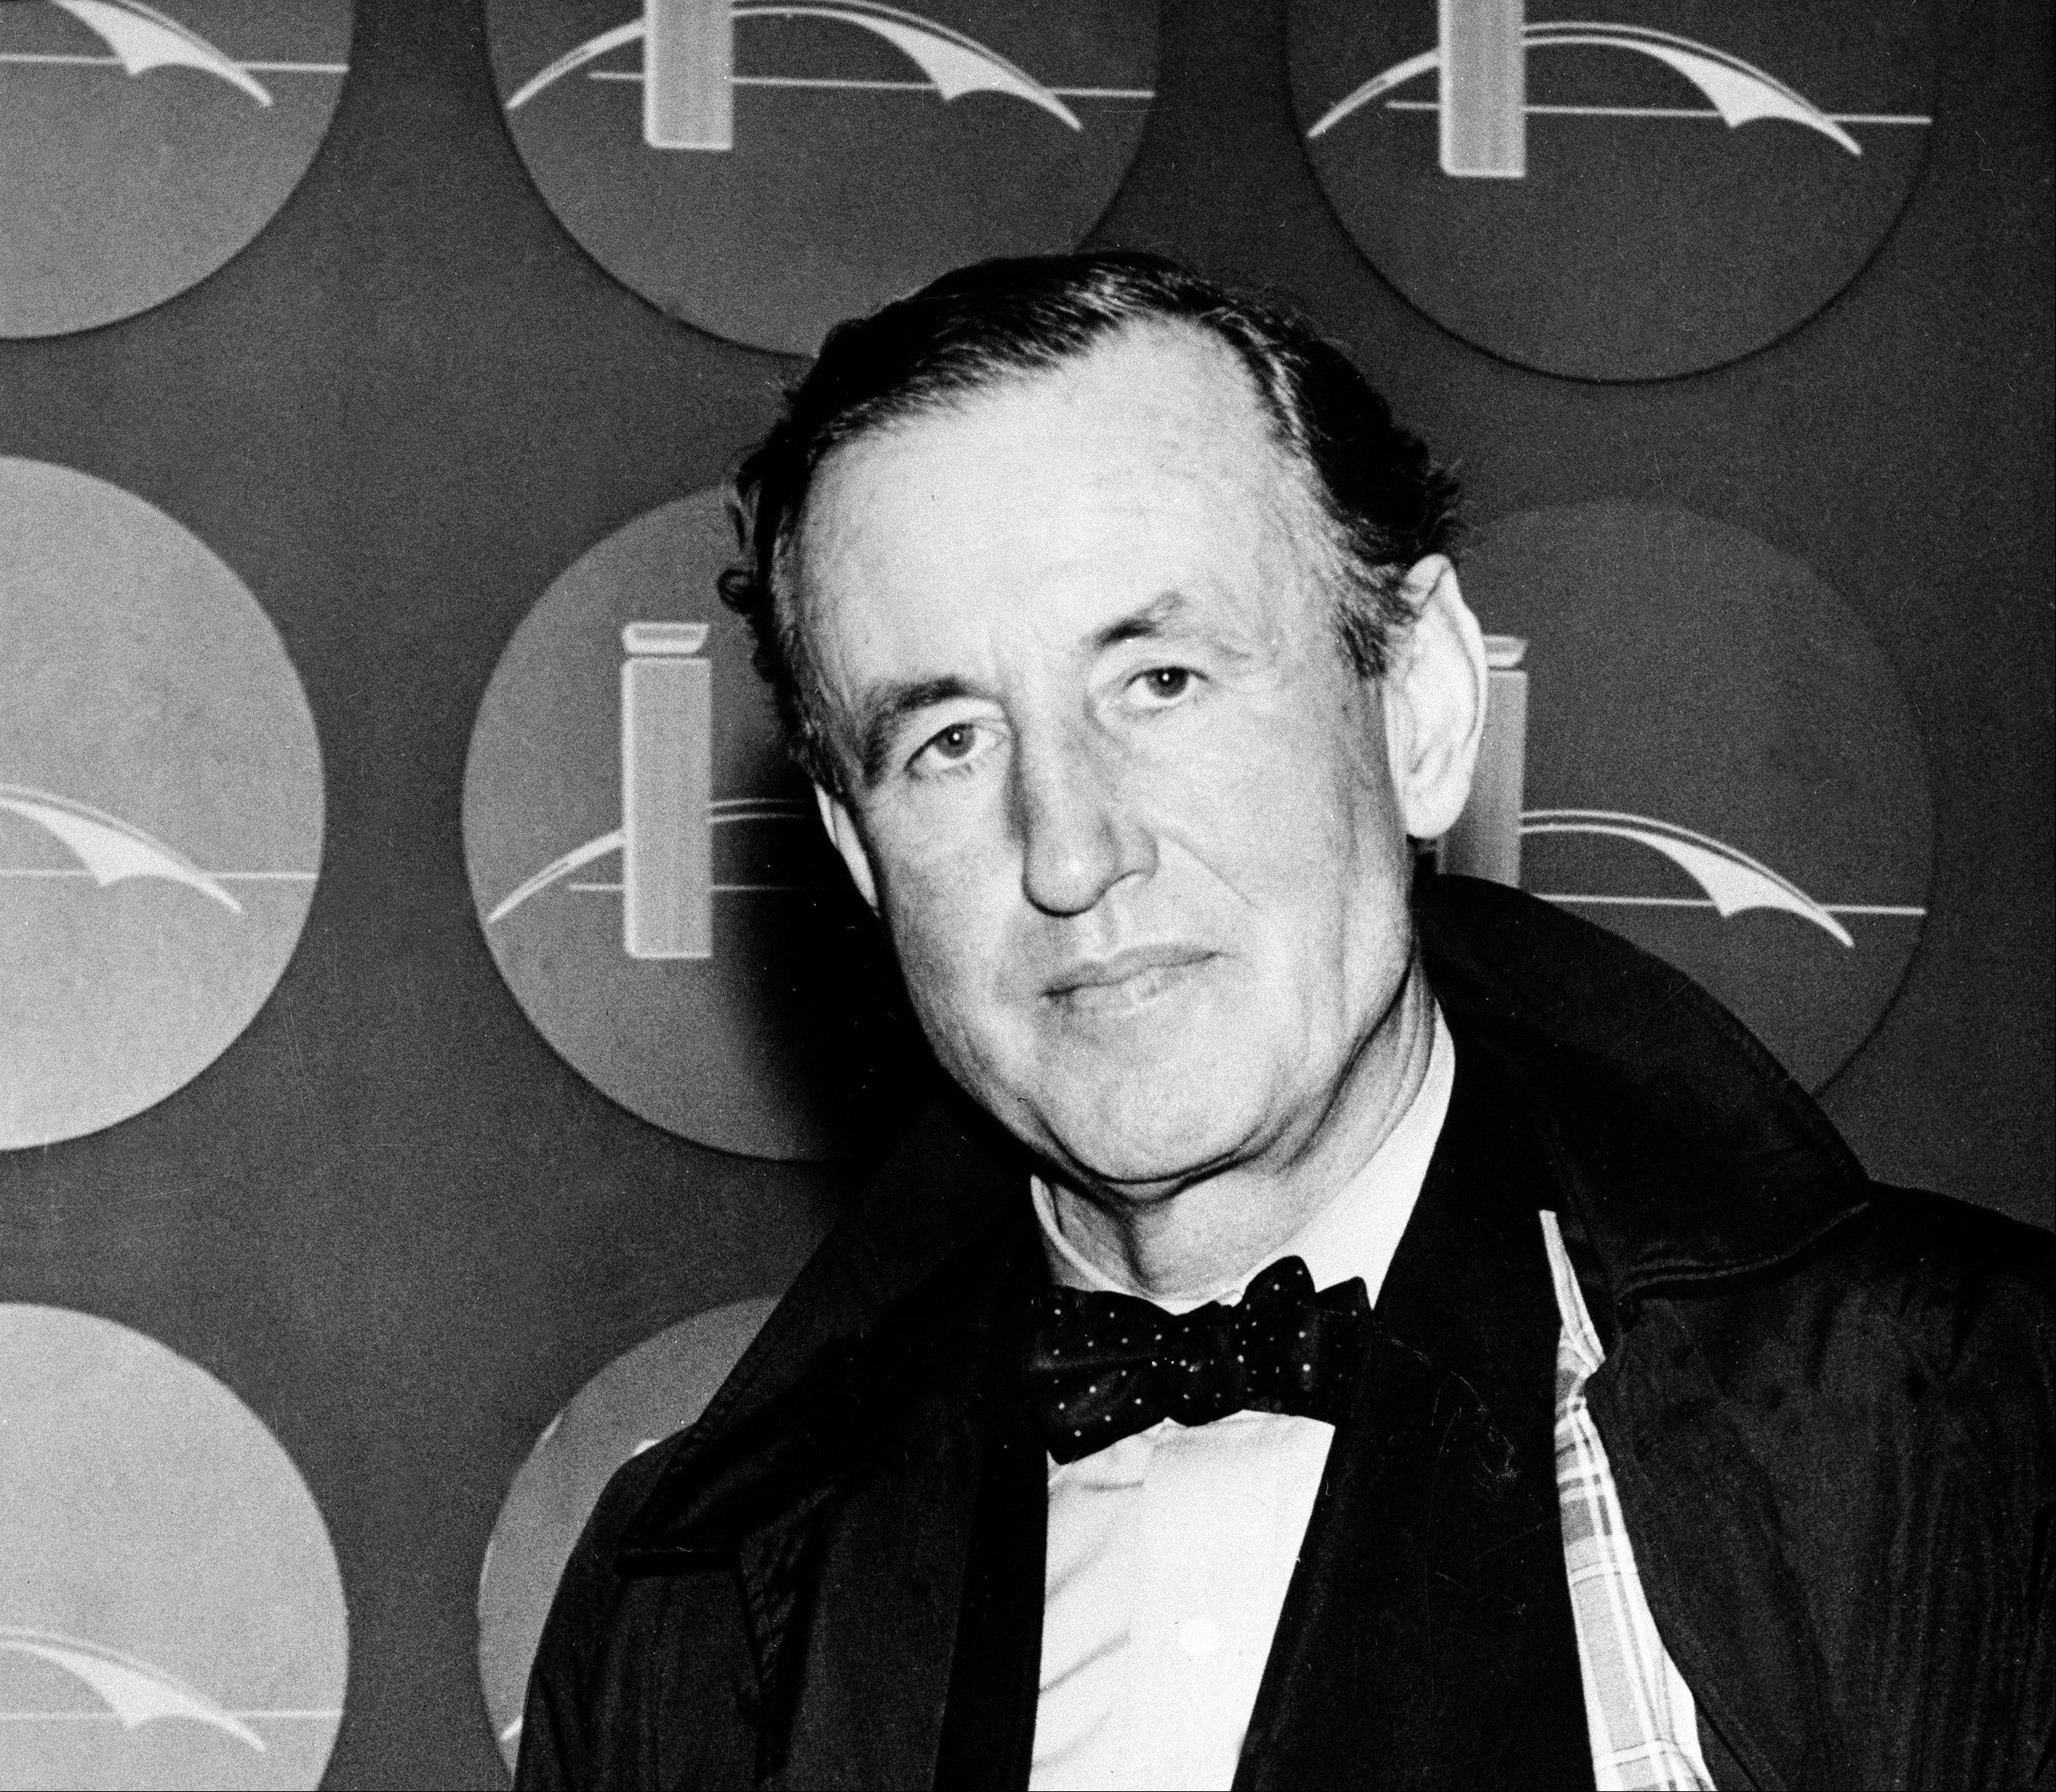 This 1962 file photo shows Ian Lancaster Fleming, the best-selling British author and creator of a fiction character known as secret agent, James Bond. British doctors who carefully read Ian Fleming�s series of James Bond novels say the celebrated spy regularly drank more than four times the recommended limit of alcohol per week. Their research was published in the light-hearted Christmas edition of the journal BMJ.